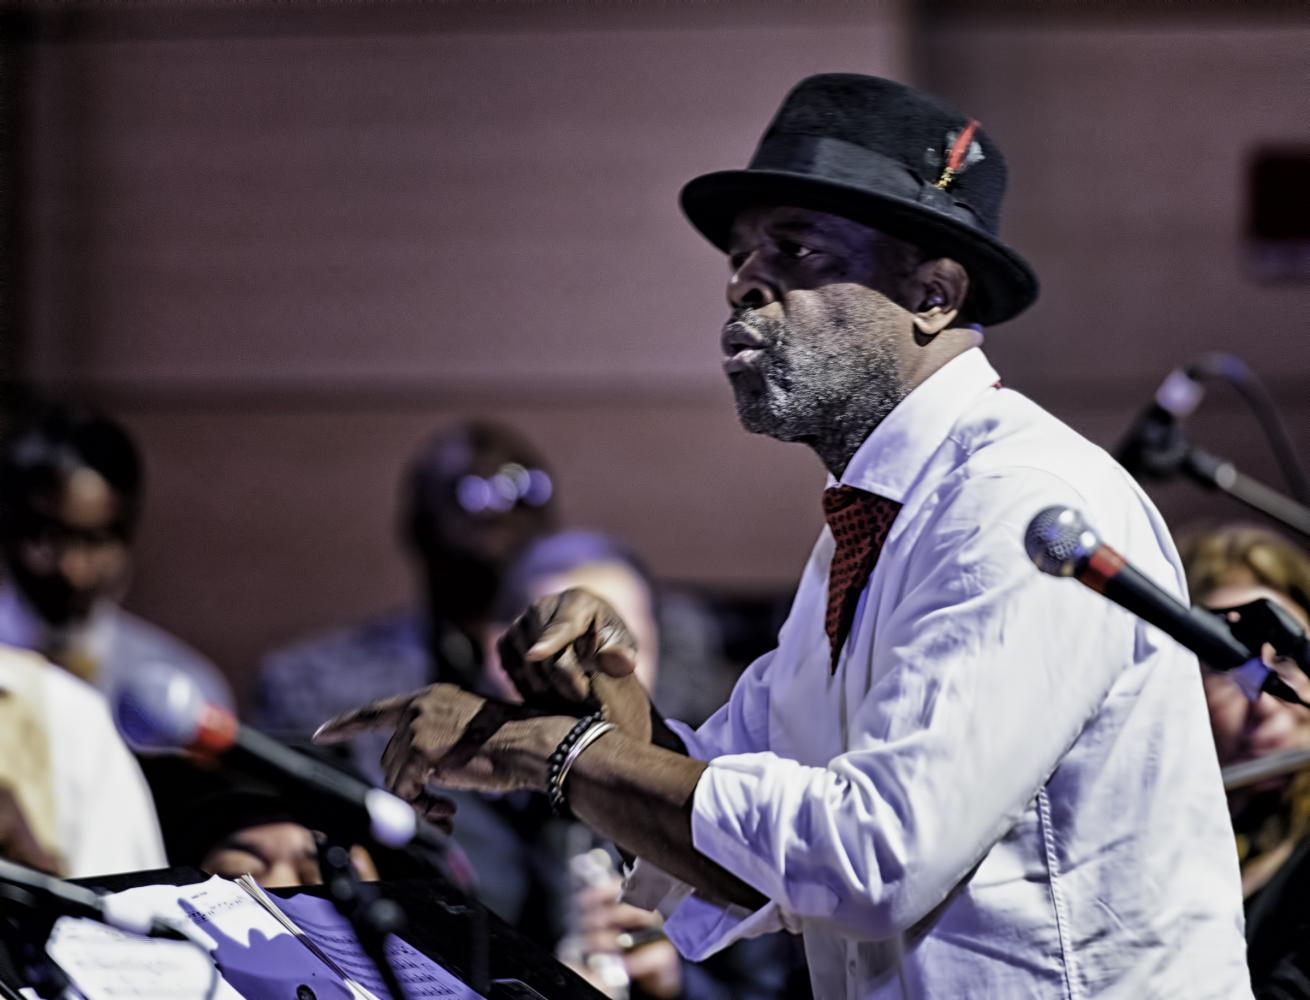 Craig Harris and Breathe at the NYC Winter Jazzfest 2017